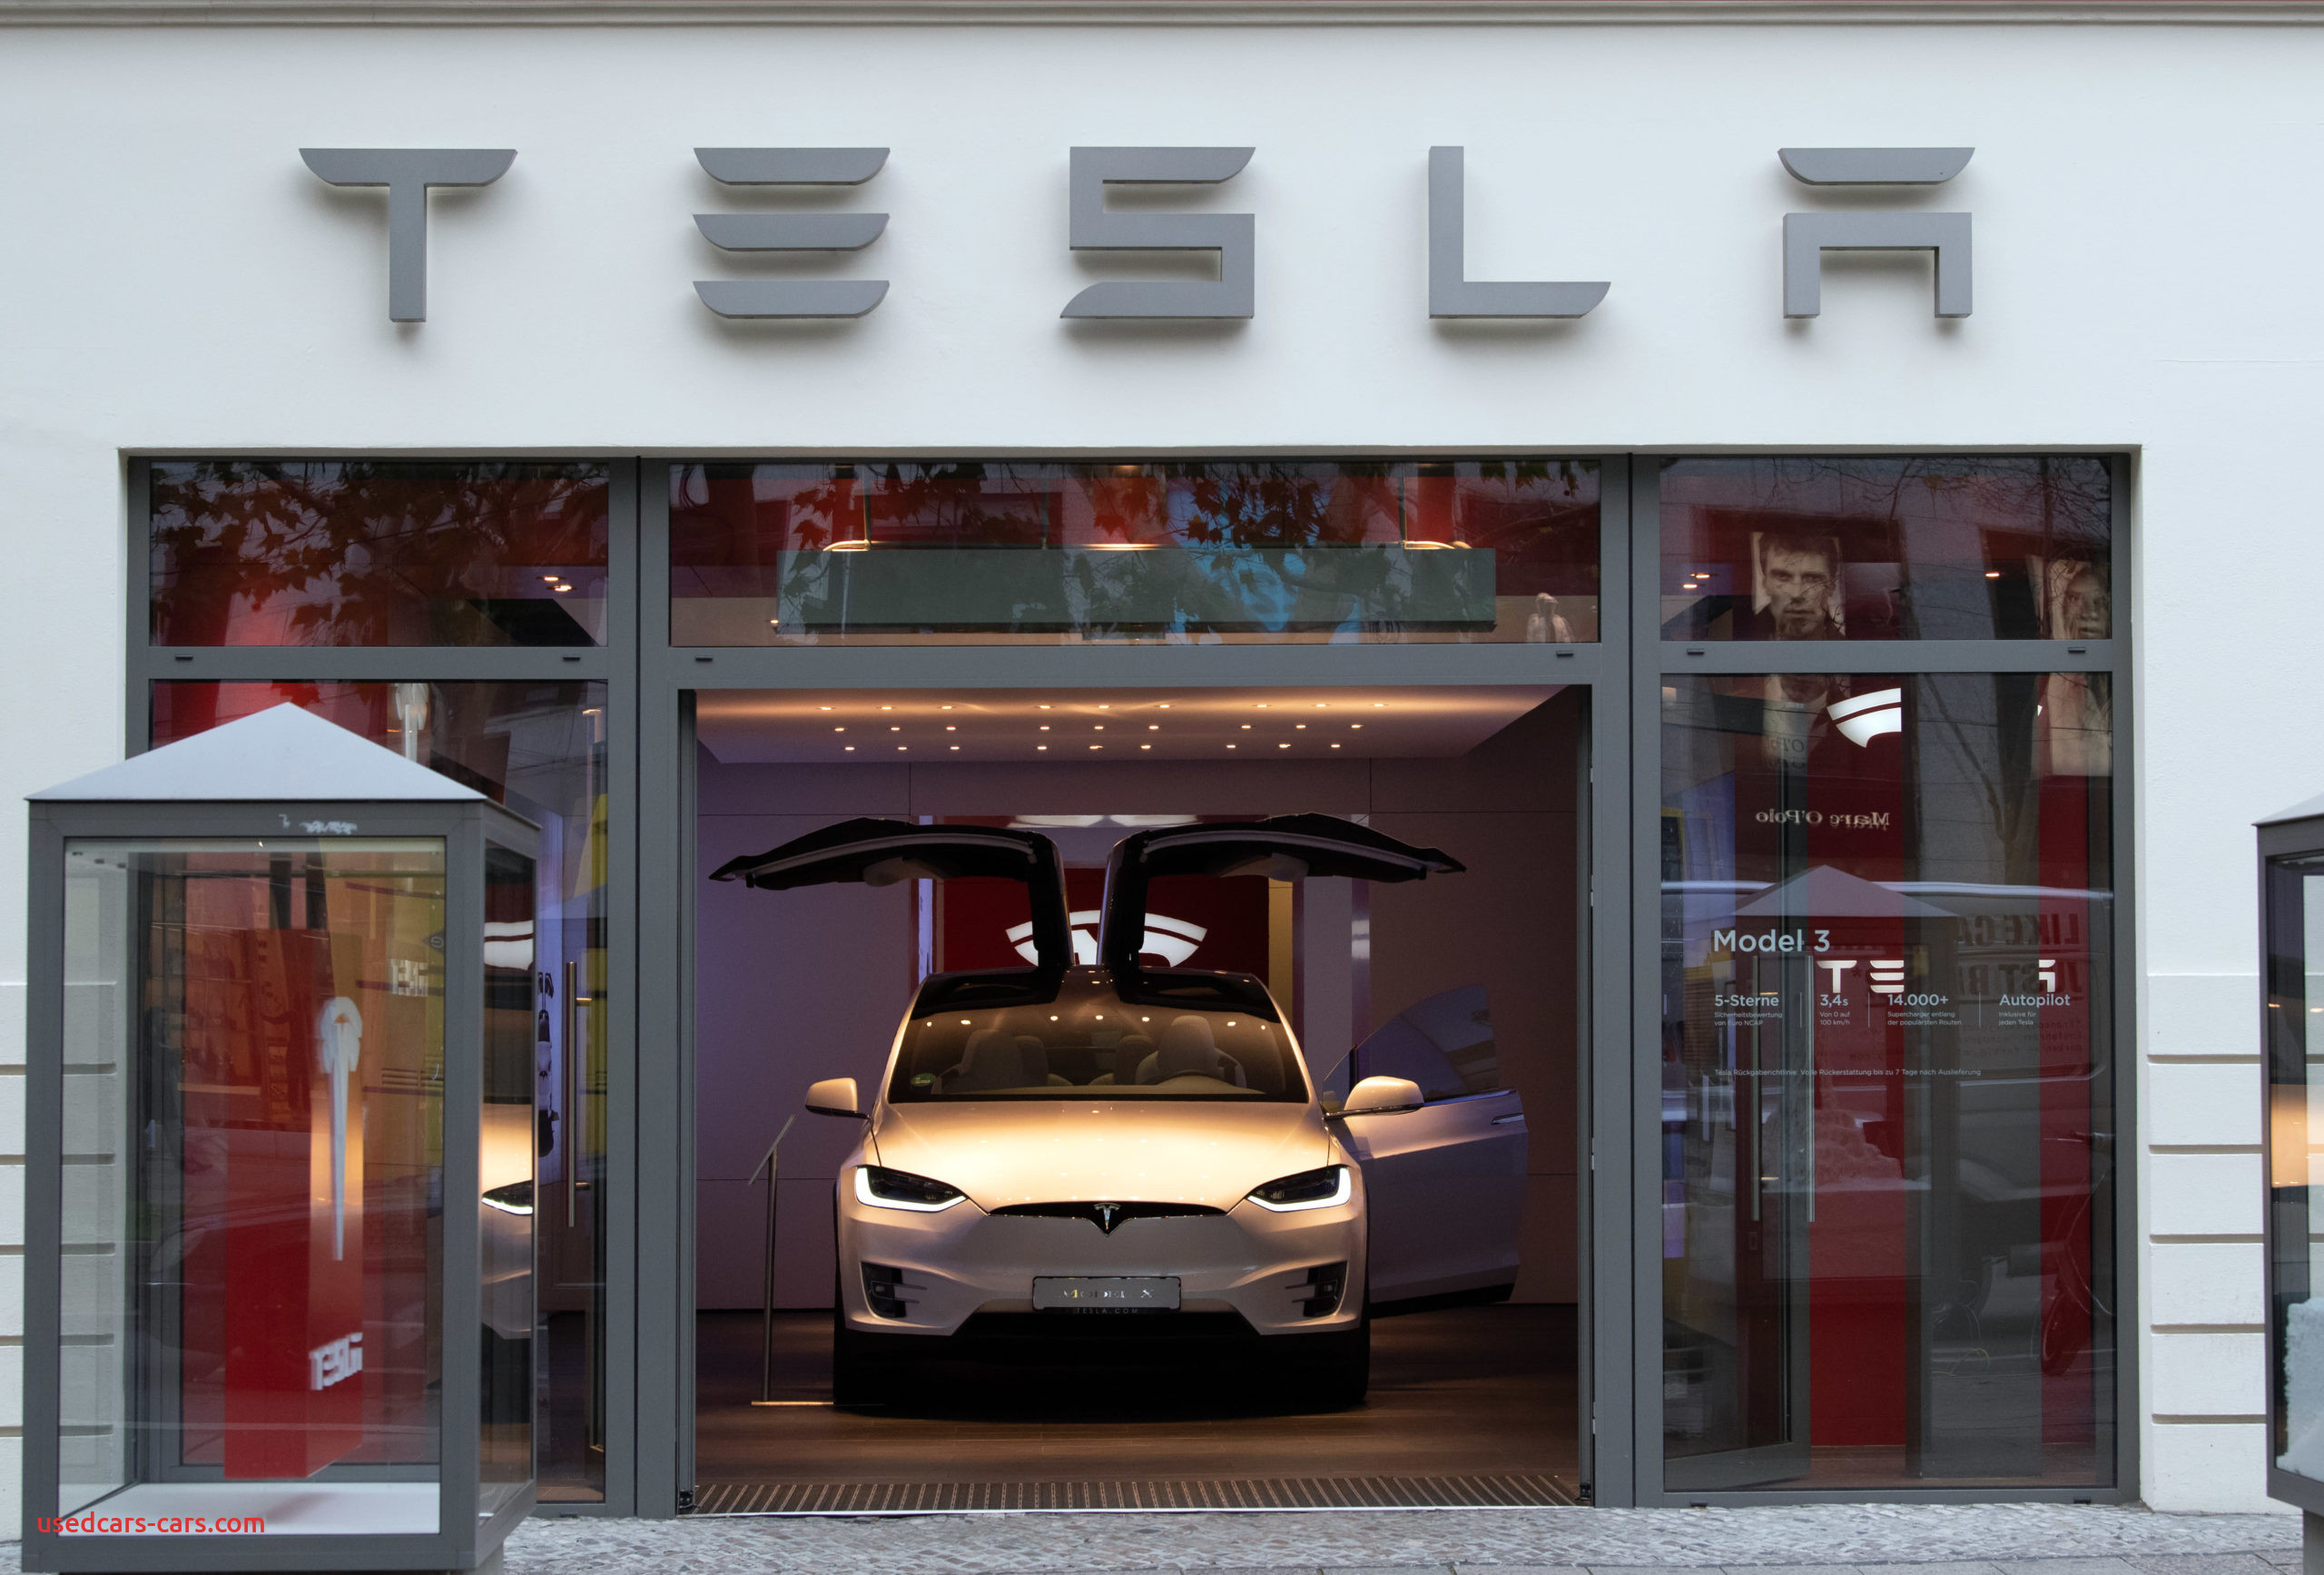 dean of valuation says tesla would need vw like sales and apple like margins to justify stock